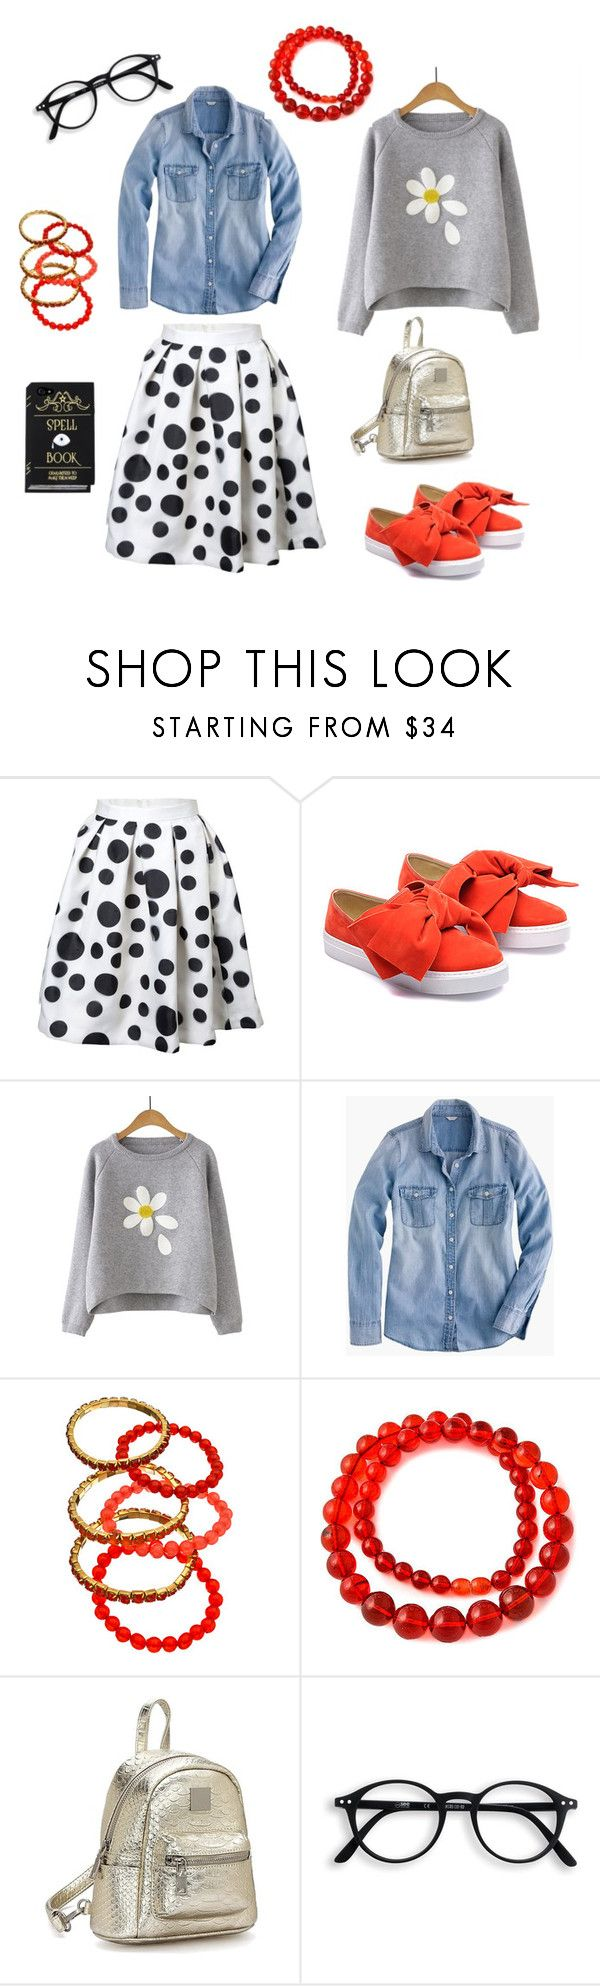 """Gamine look"" by olenkamnn ❤ liked on Polyvore featuring Just Bow, J.Crew and Blu Bijoux"